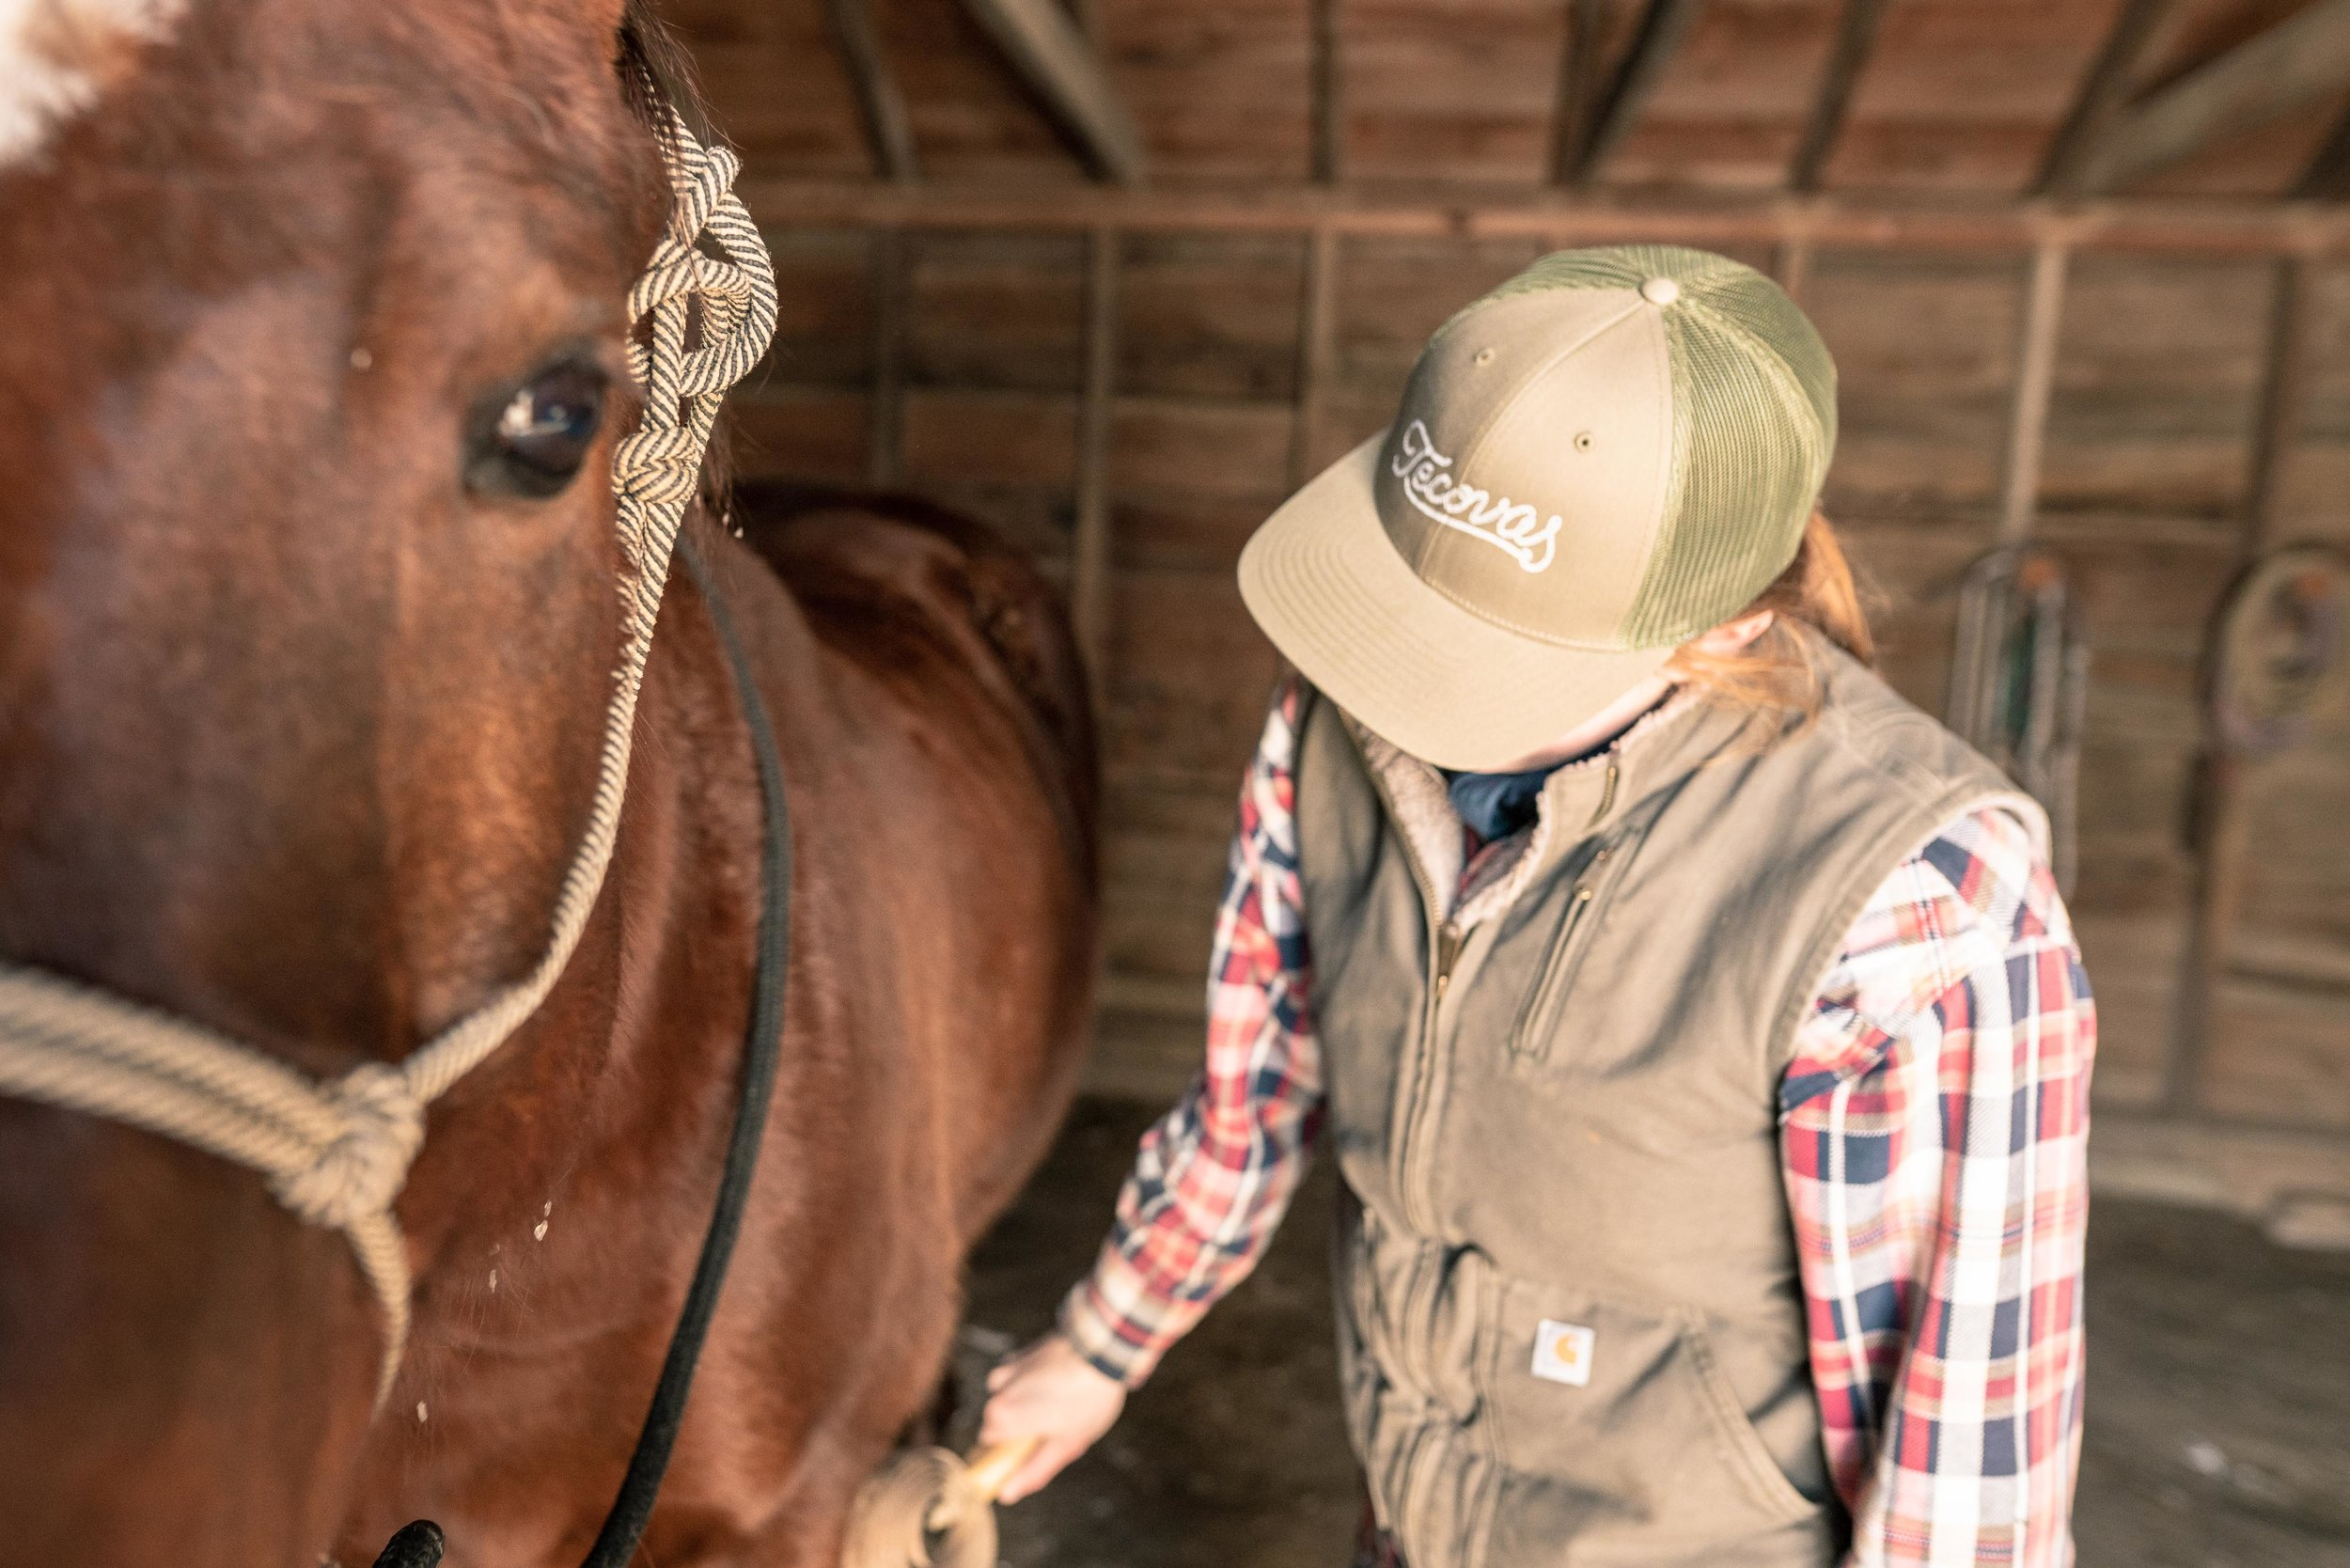 Jenna Flatgard wearing a Tecovas hat while brushing her horse in her barn in eastern Montana.